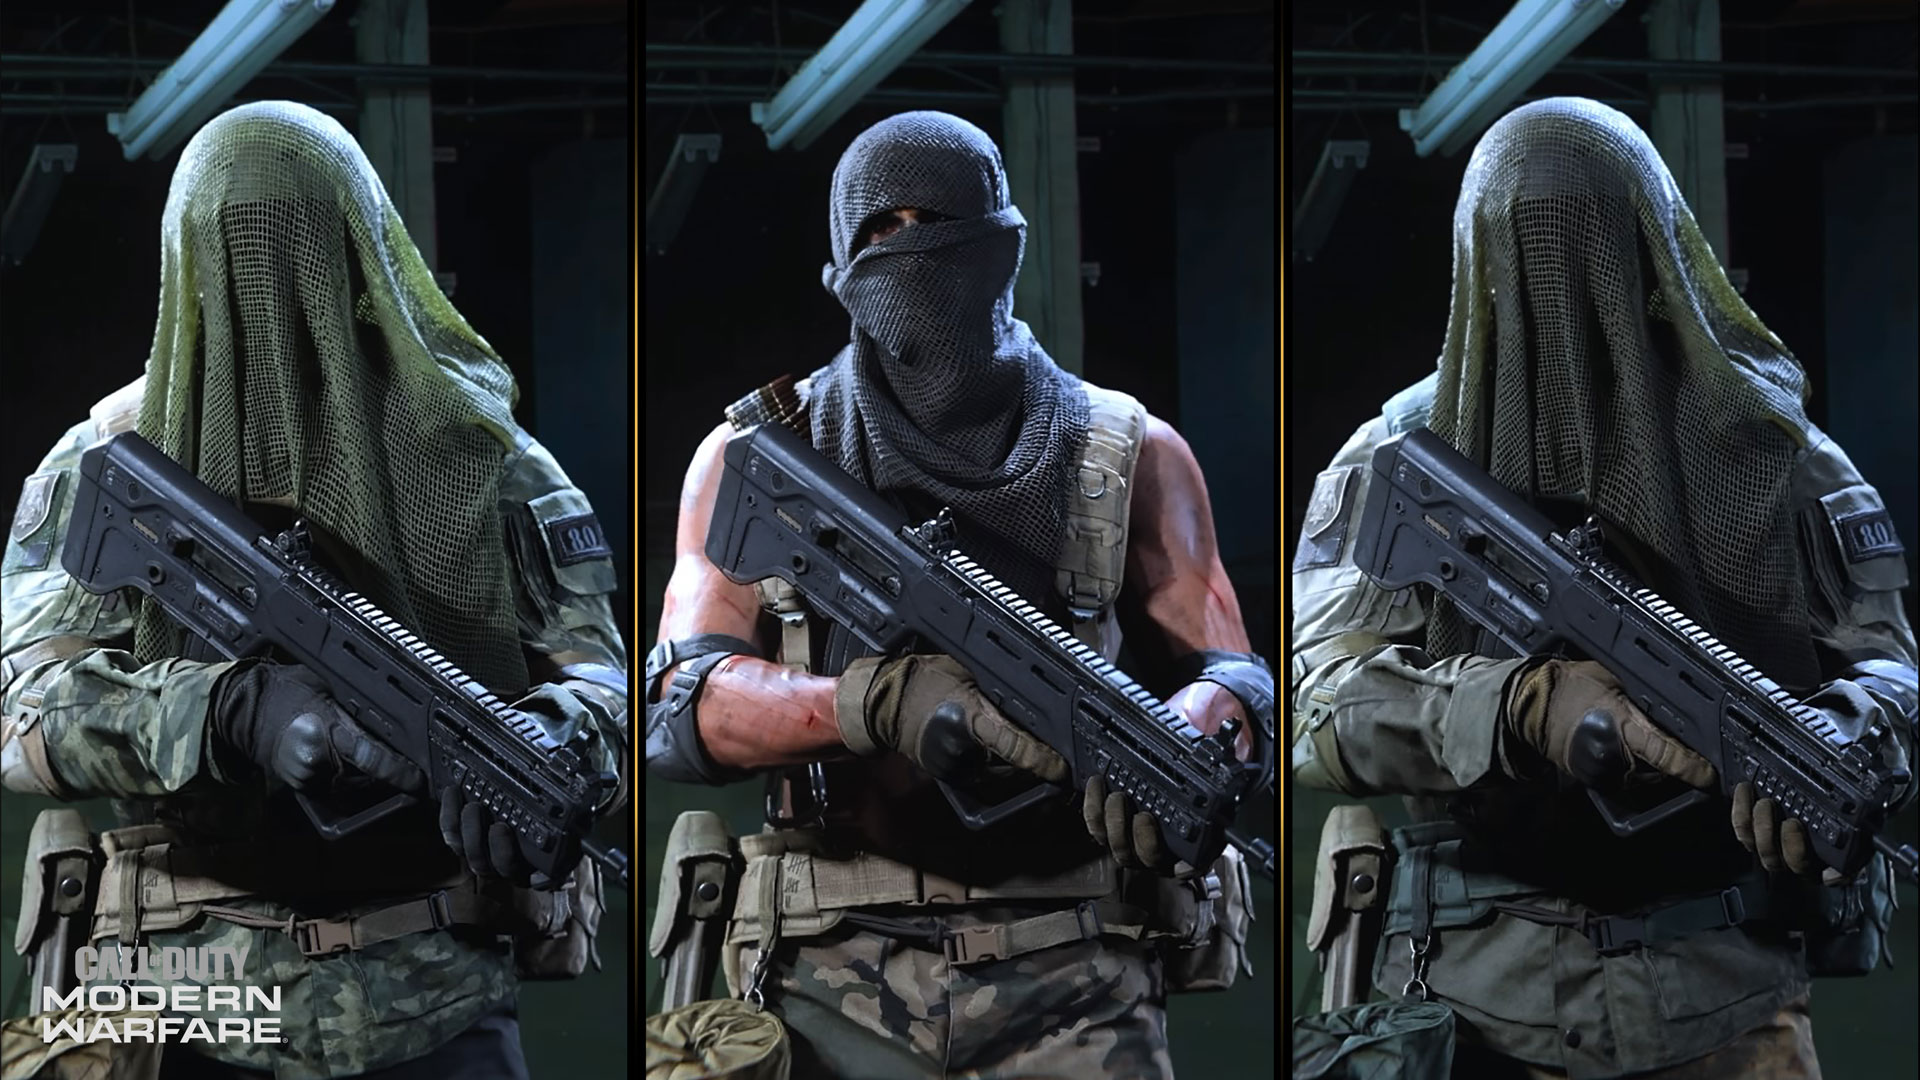 The Allegiance Operators of Call of Duty®: Modern Warfare® bring Mace to Battle - Image 4